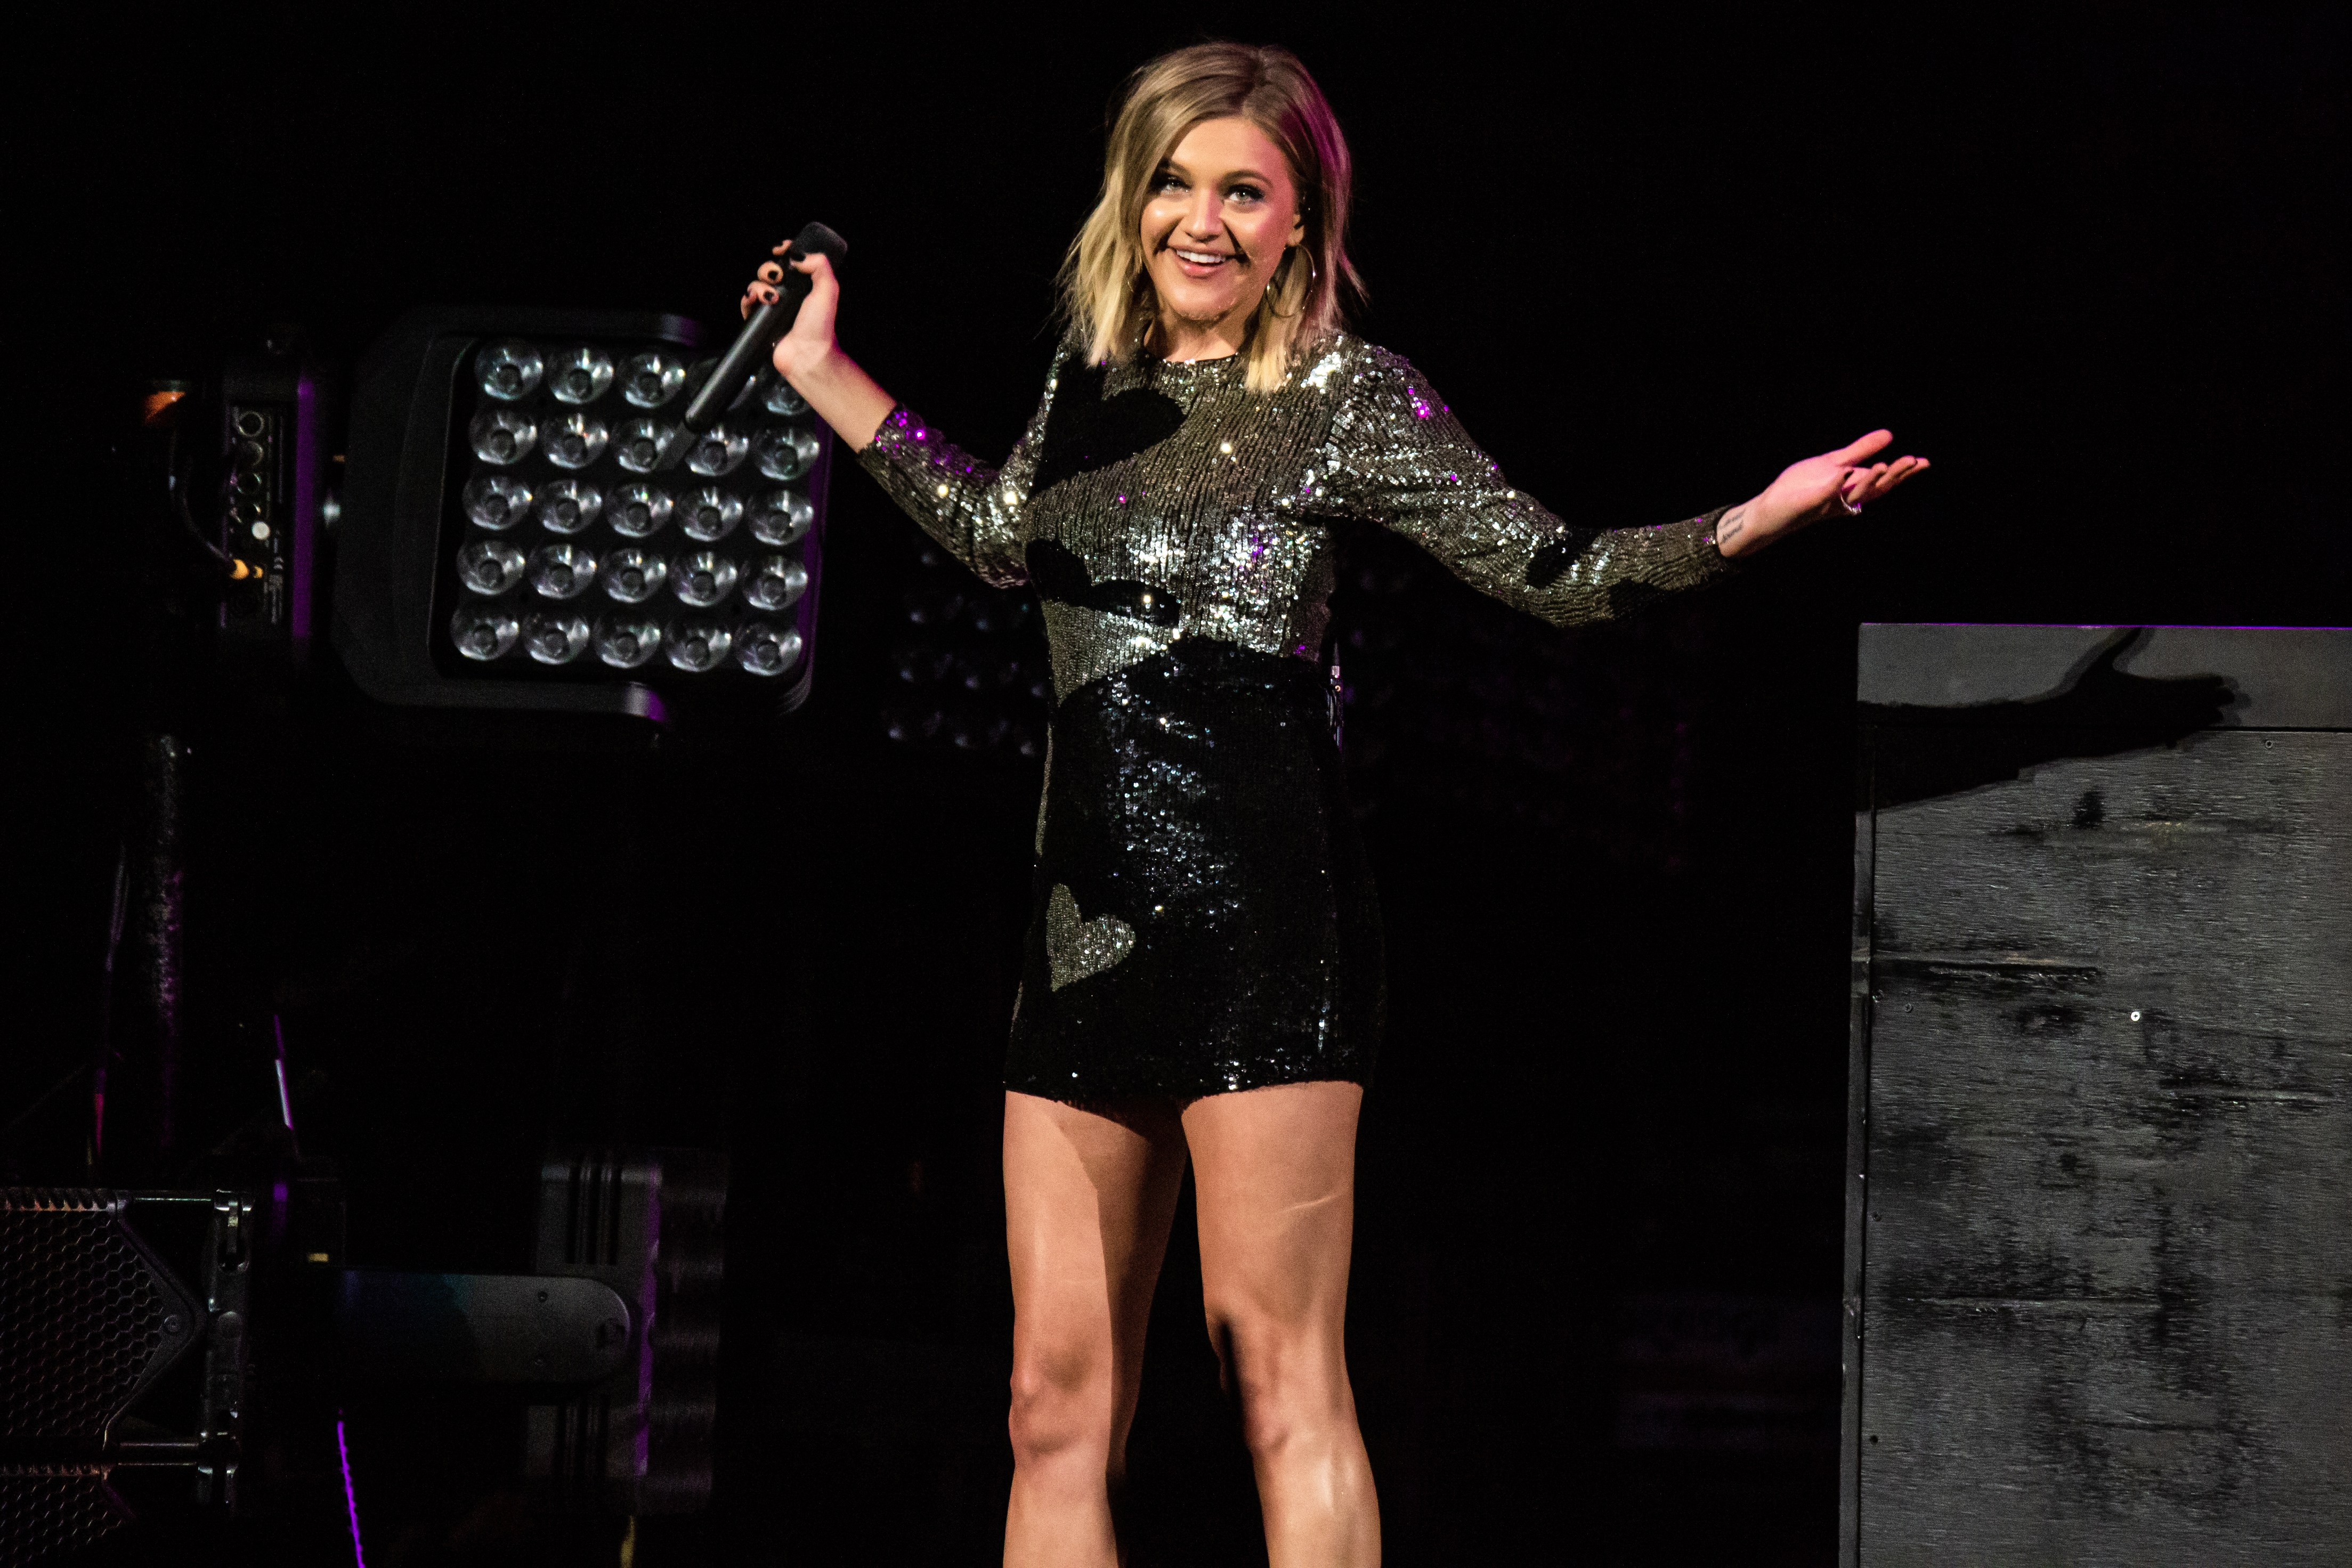 d60a01b900e0a Kelsea Ballerini To Perform At Victoria's Secr... | News | MegaCountry